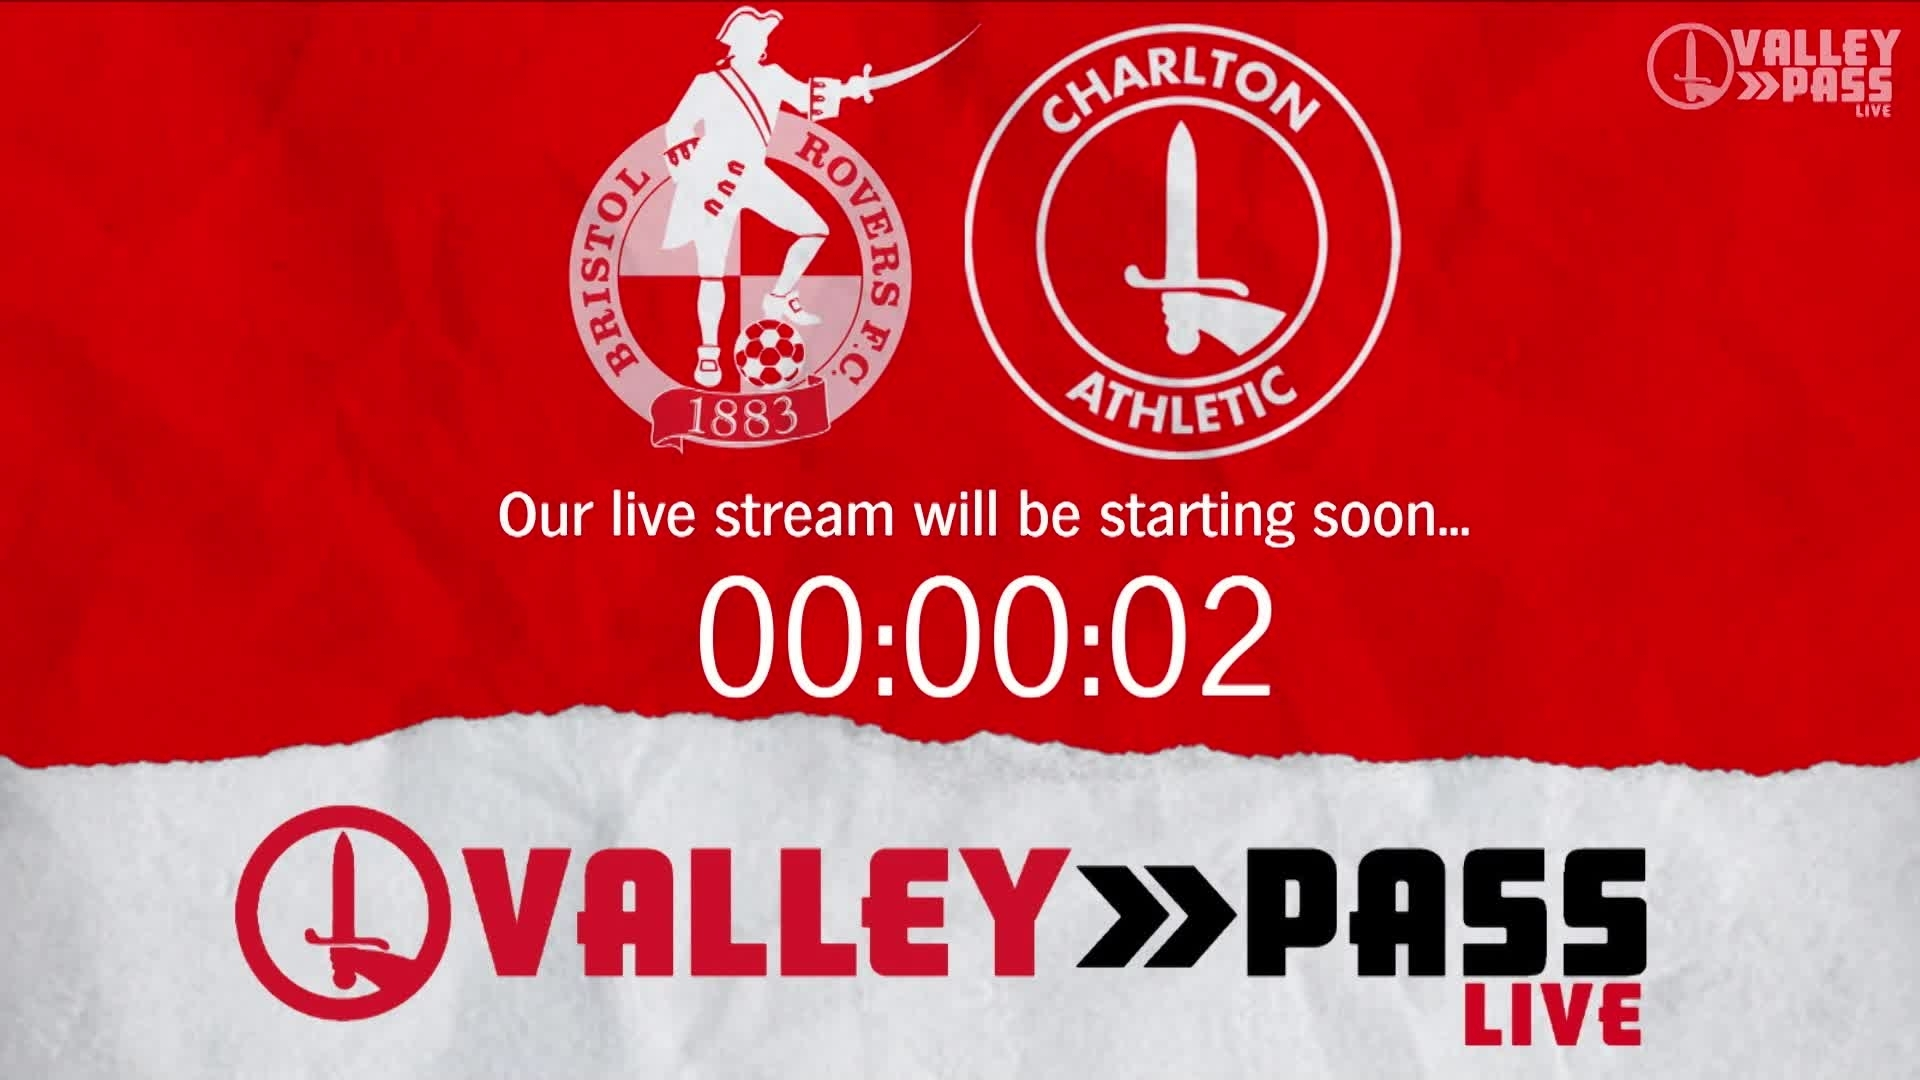 Valley Pass Live | Full Broadcast - Bristol Rovers (January 2021)